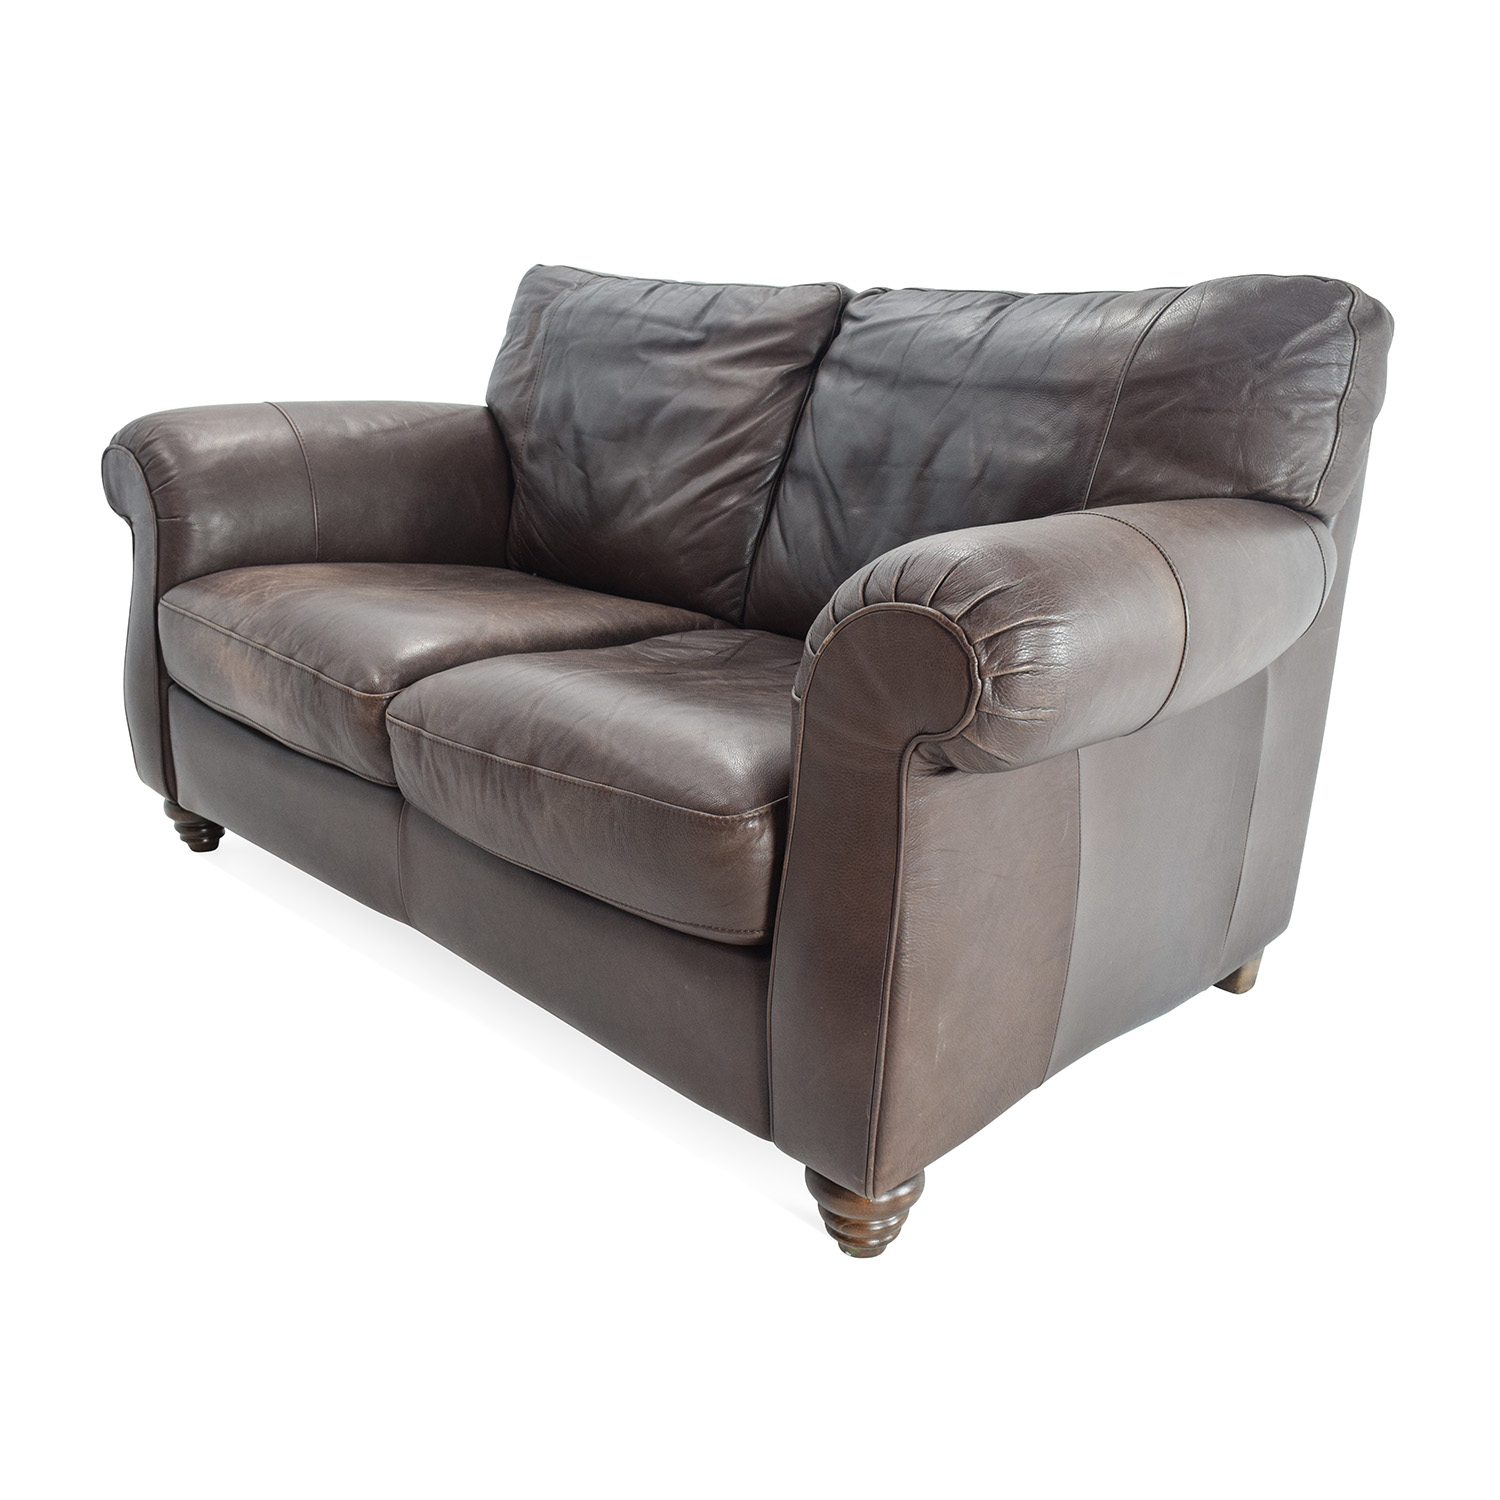 81 off natuzzi natuzzi brown leather loveseat sofas - Sofas natuzzi ...